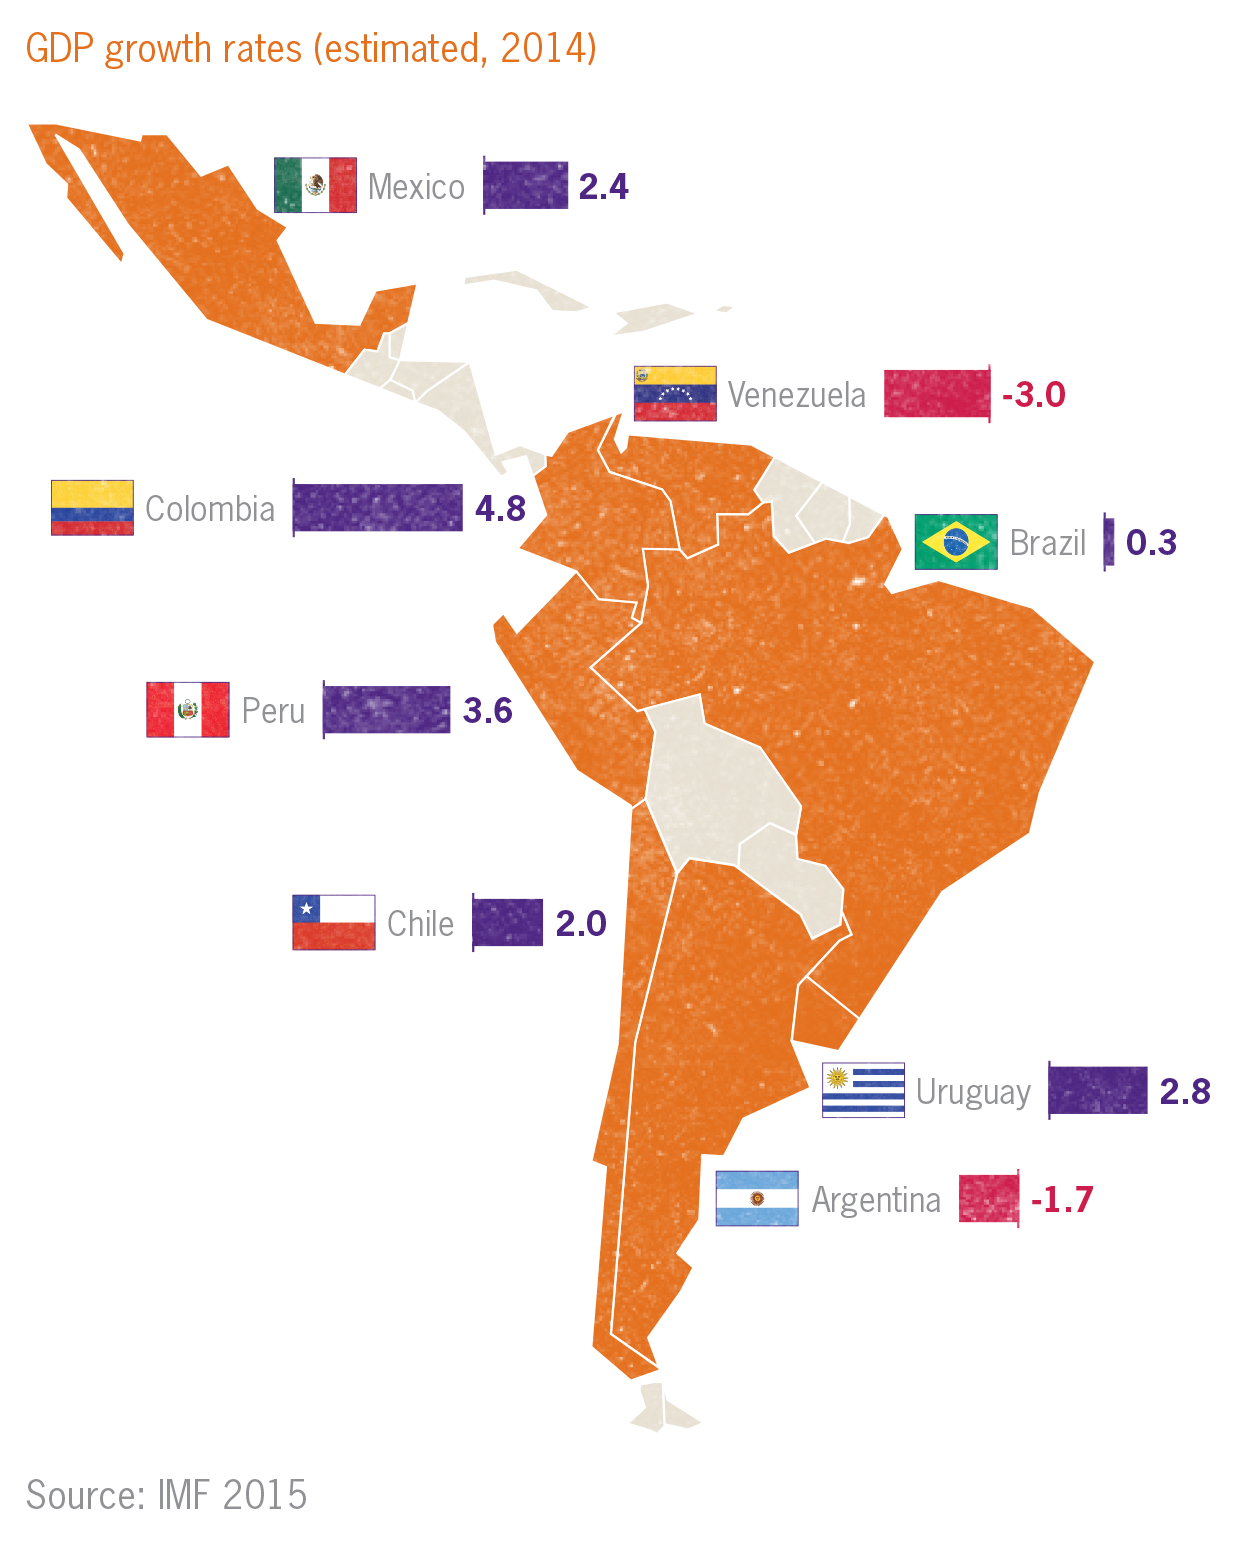 GDP growth rates in Latin America